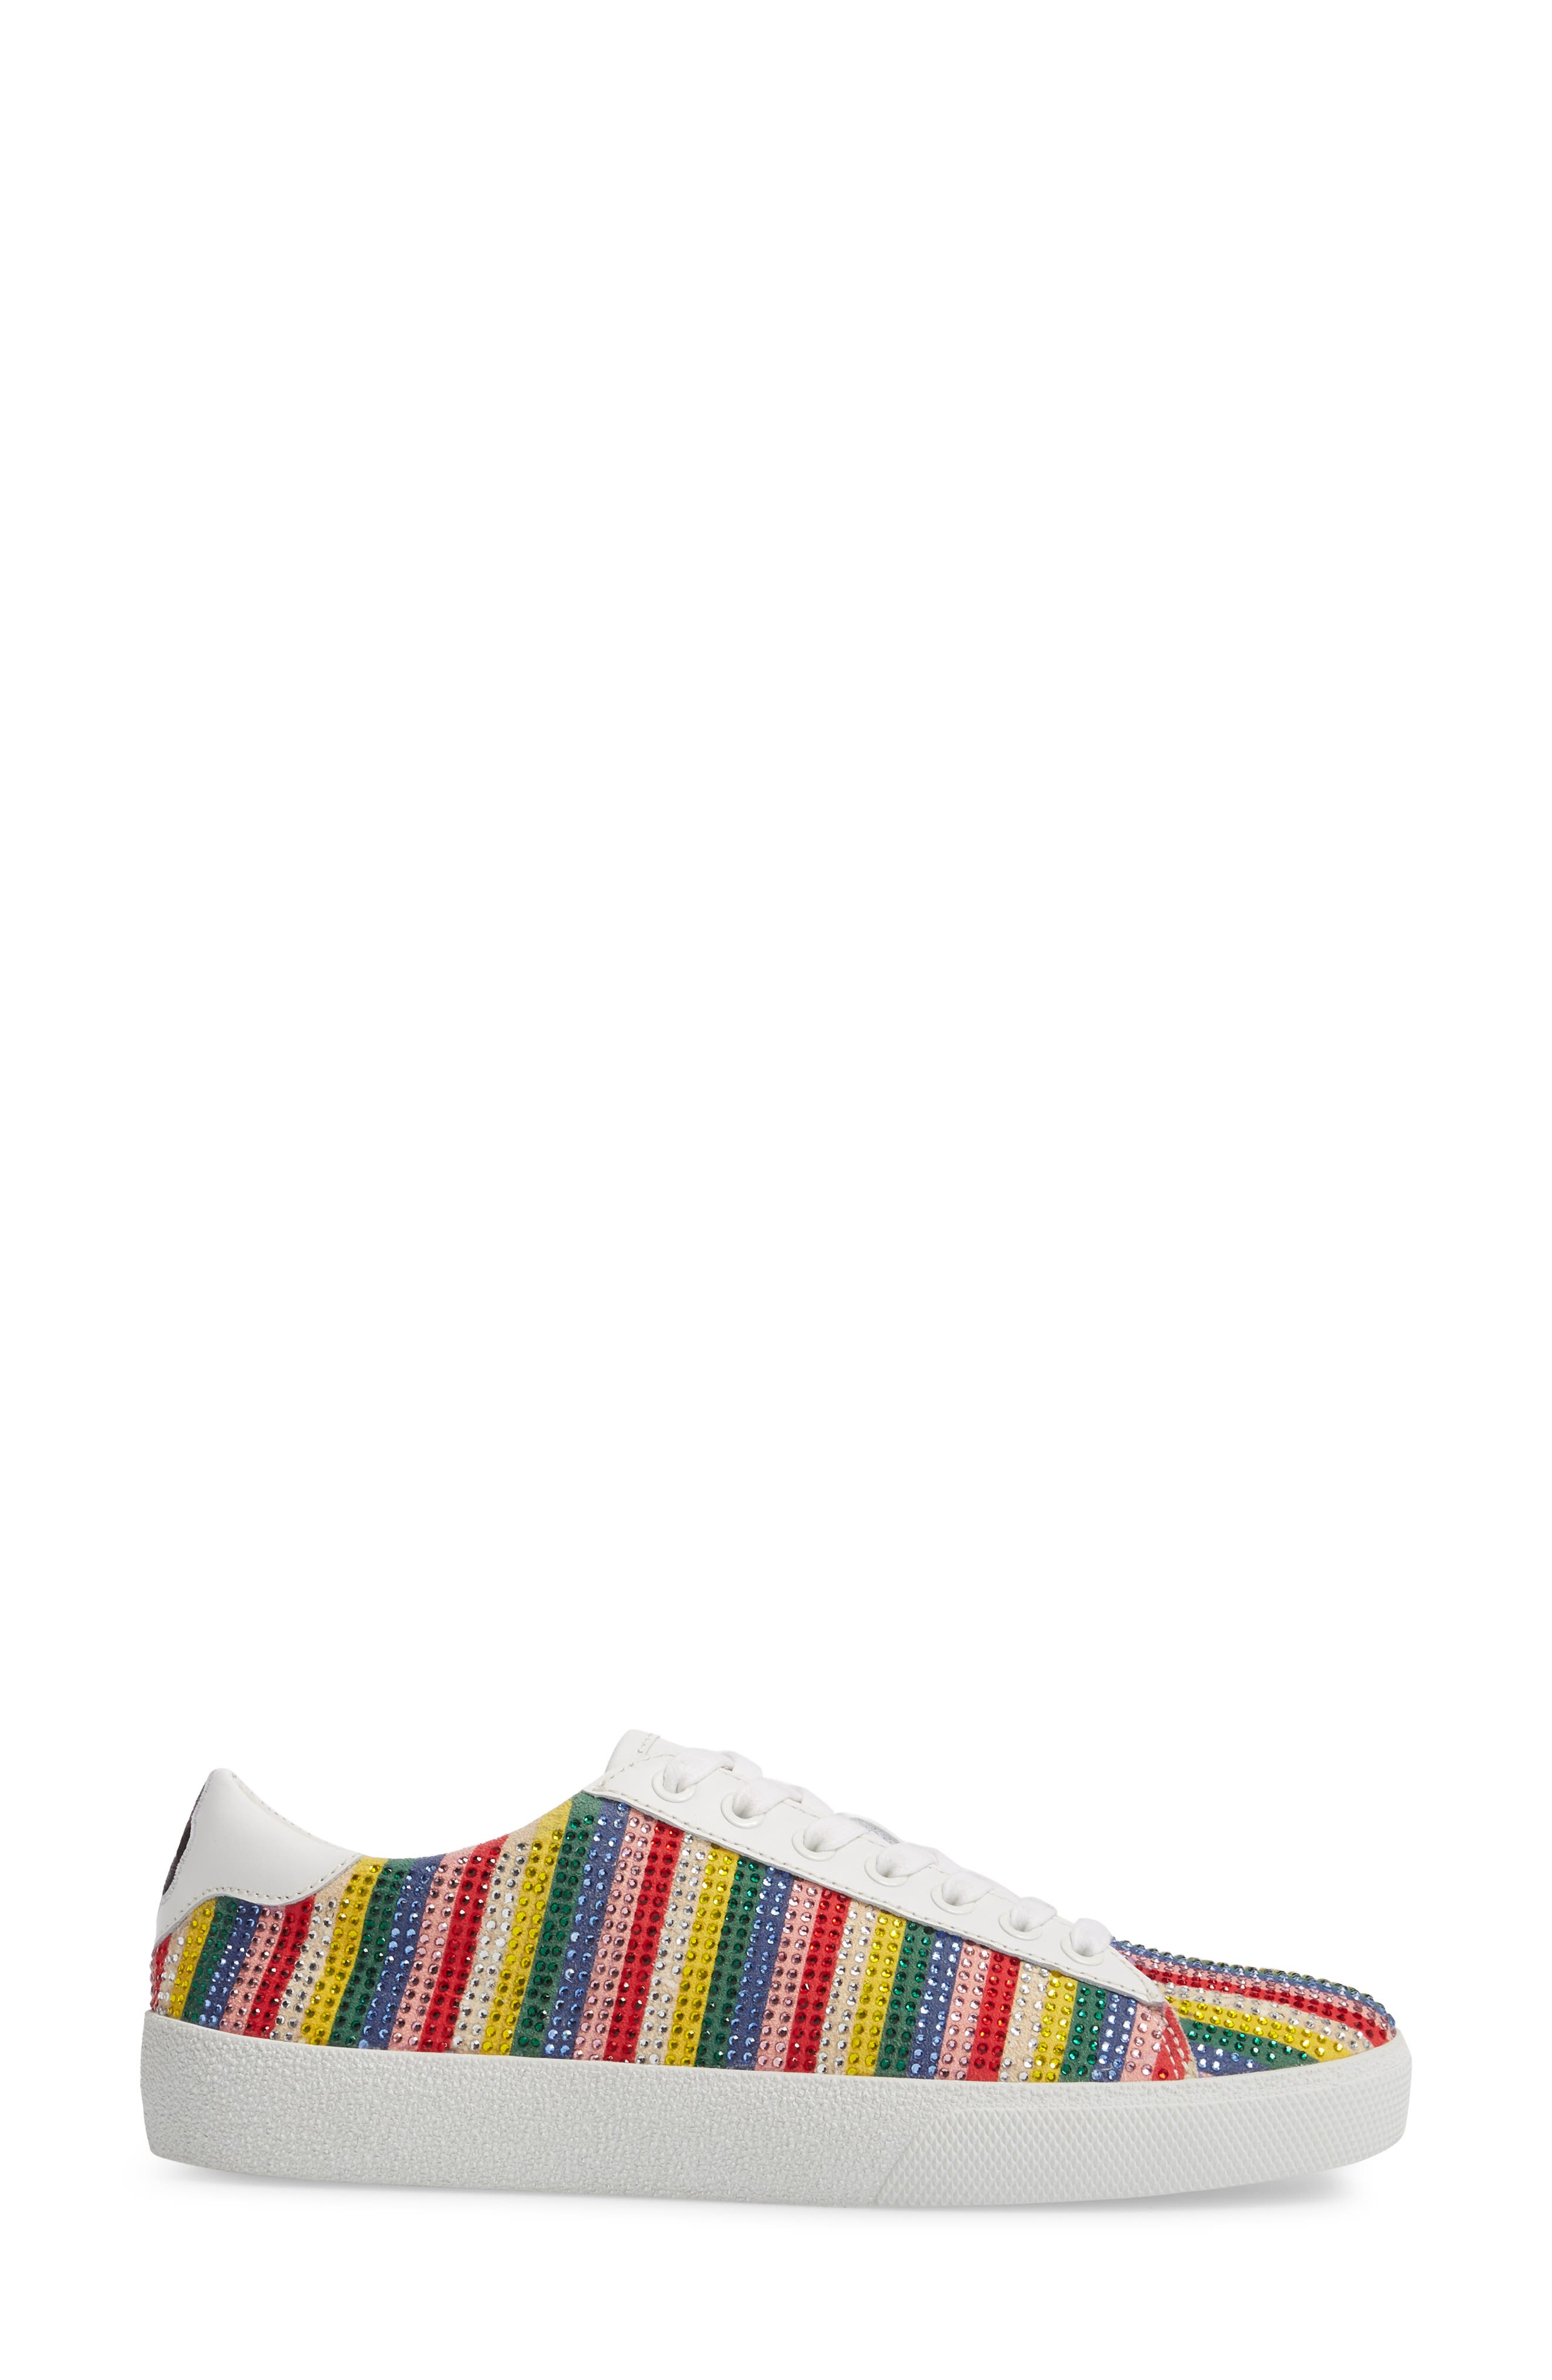 Cassidy Crystal Embellished Sneaker,                             Alternate thumbnail 3, color,